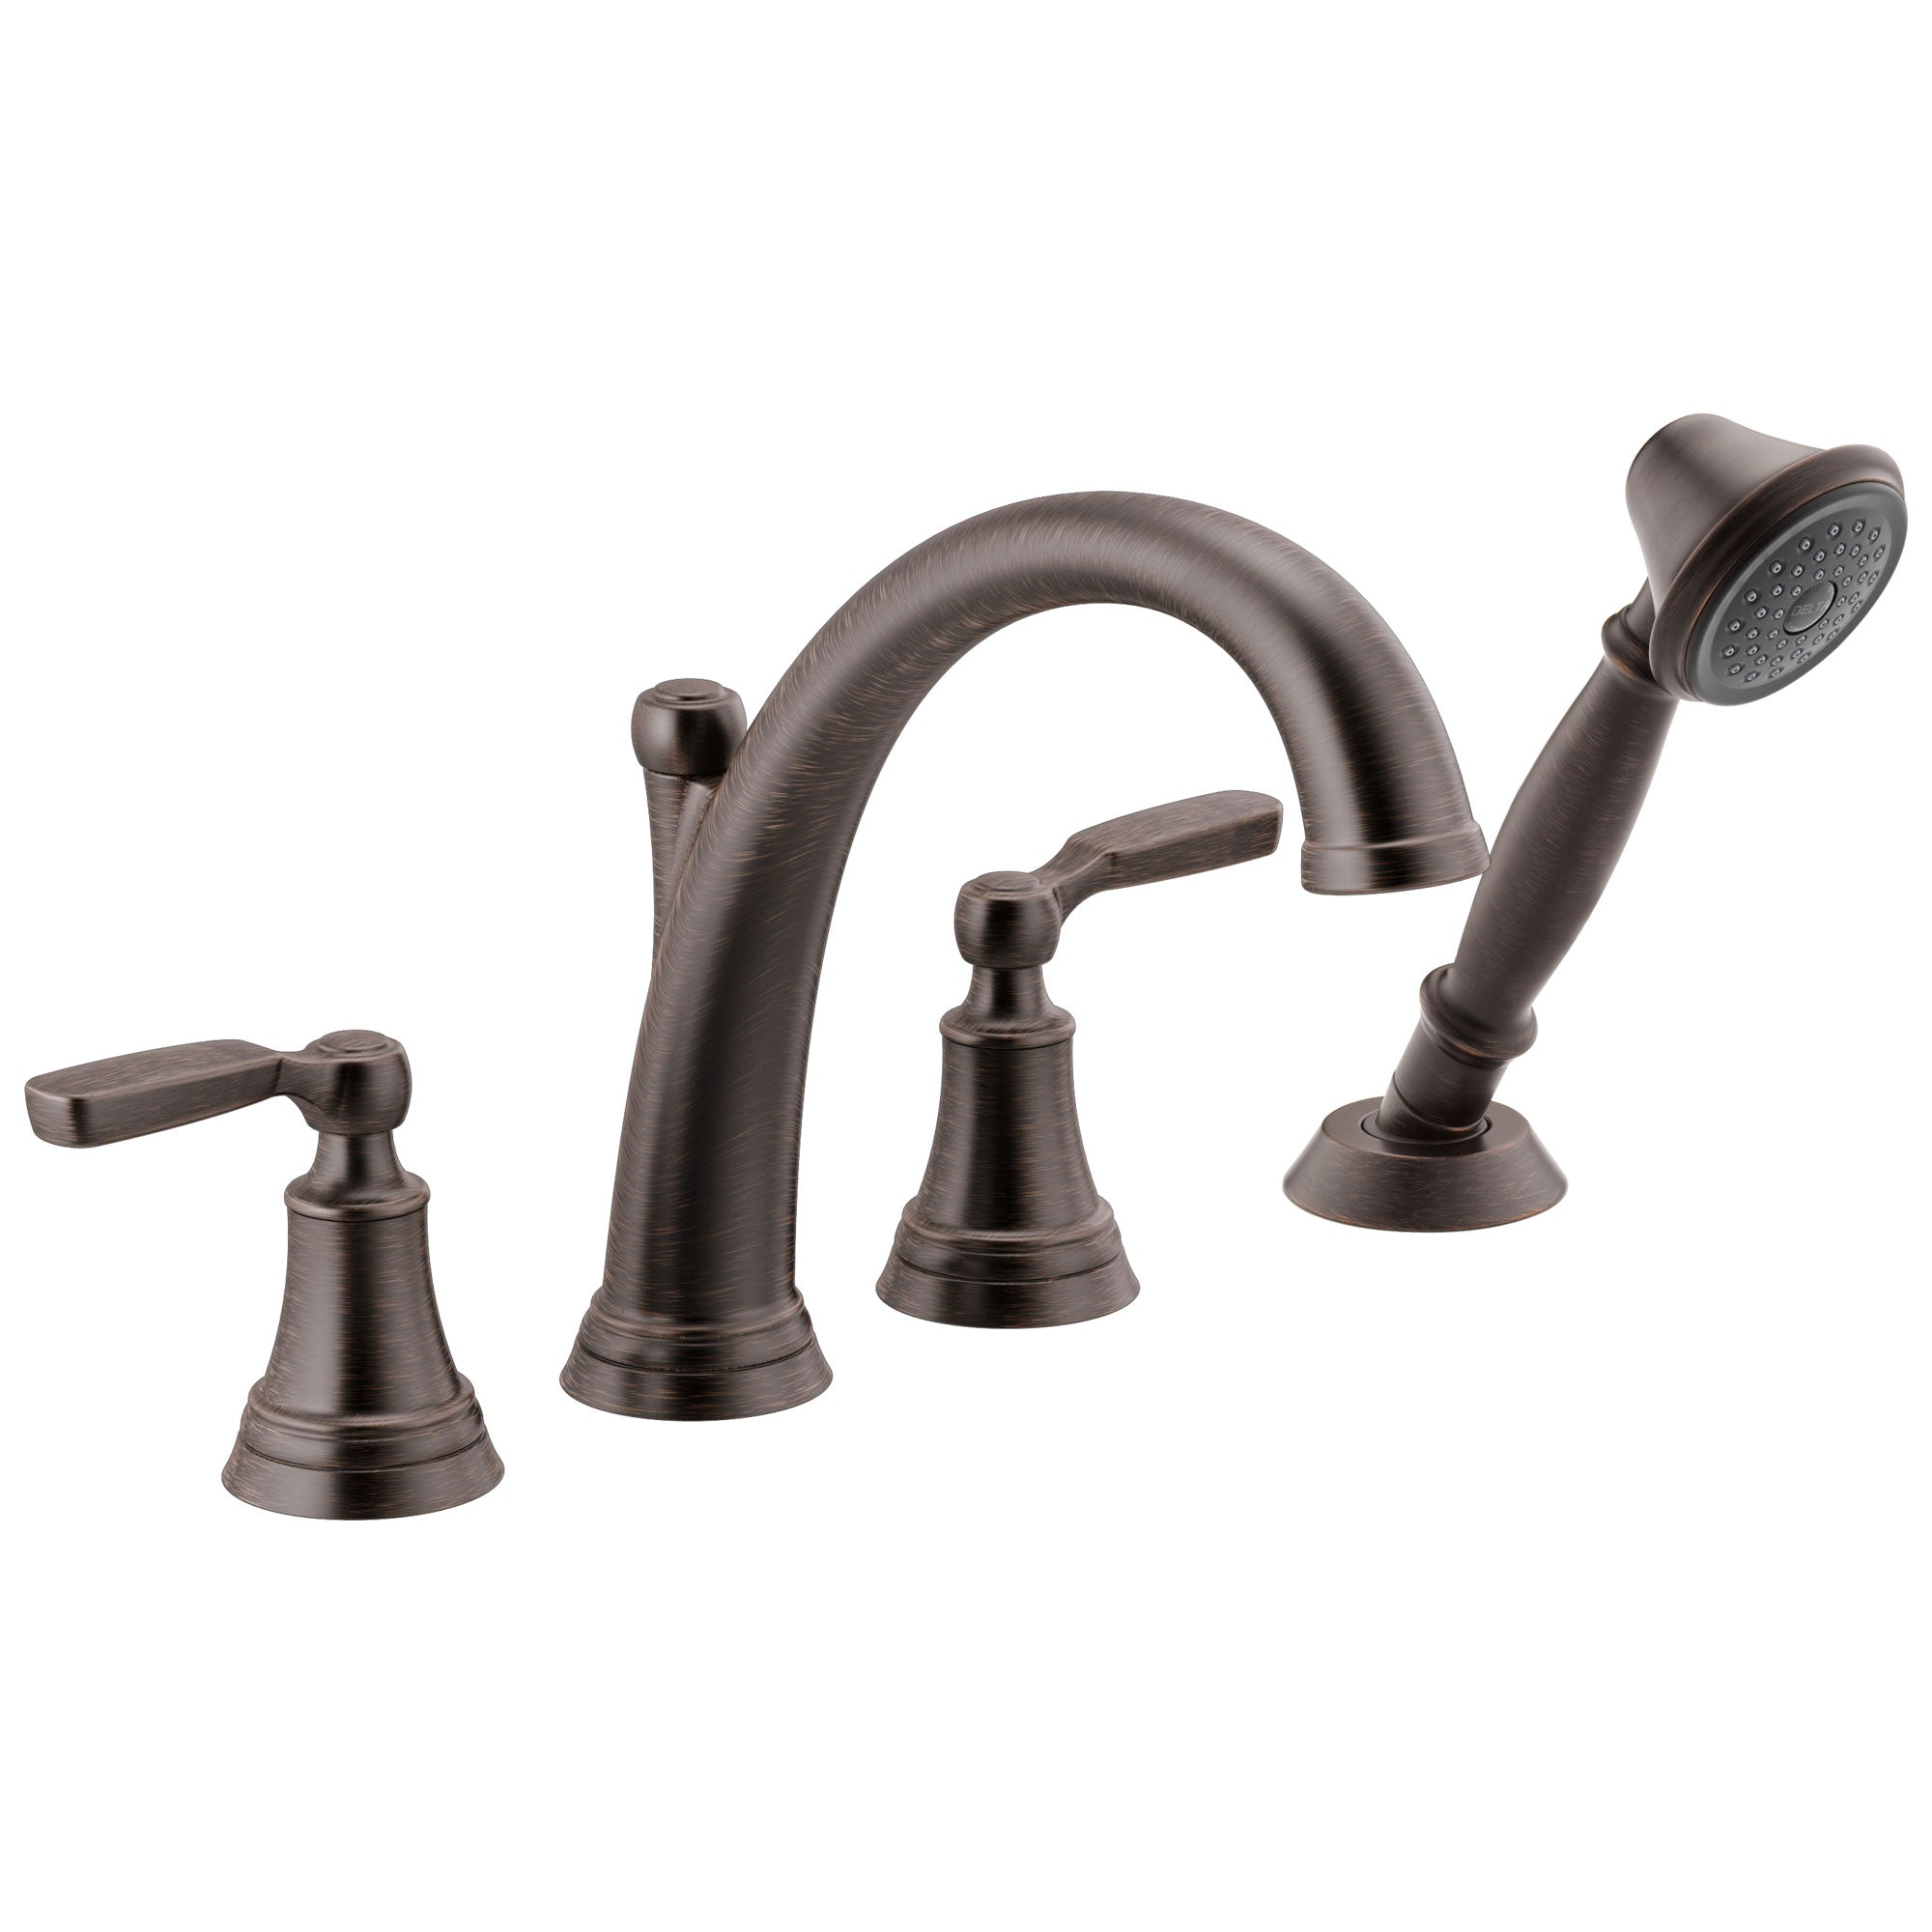 Delta Woodhurst Venetian Bronze Finish Roman Tub Filler Faucet Trim Kit with Hand Shower (Requires Valves) DT4732RB